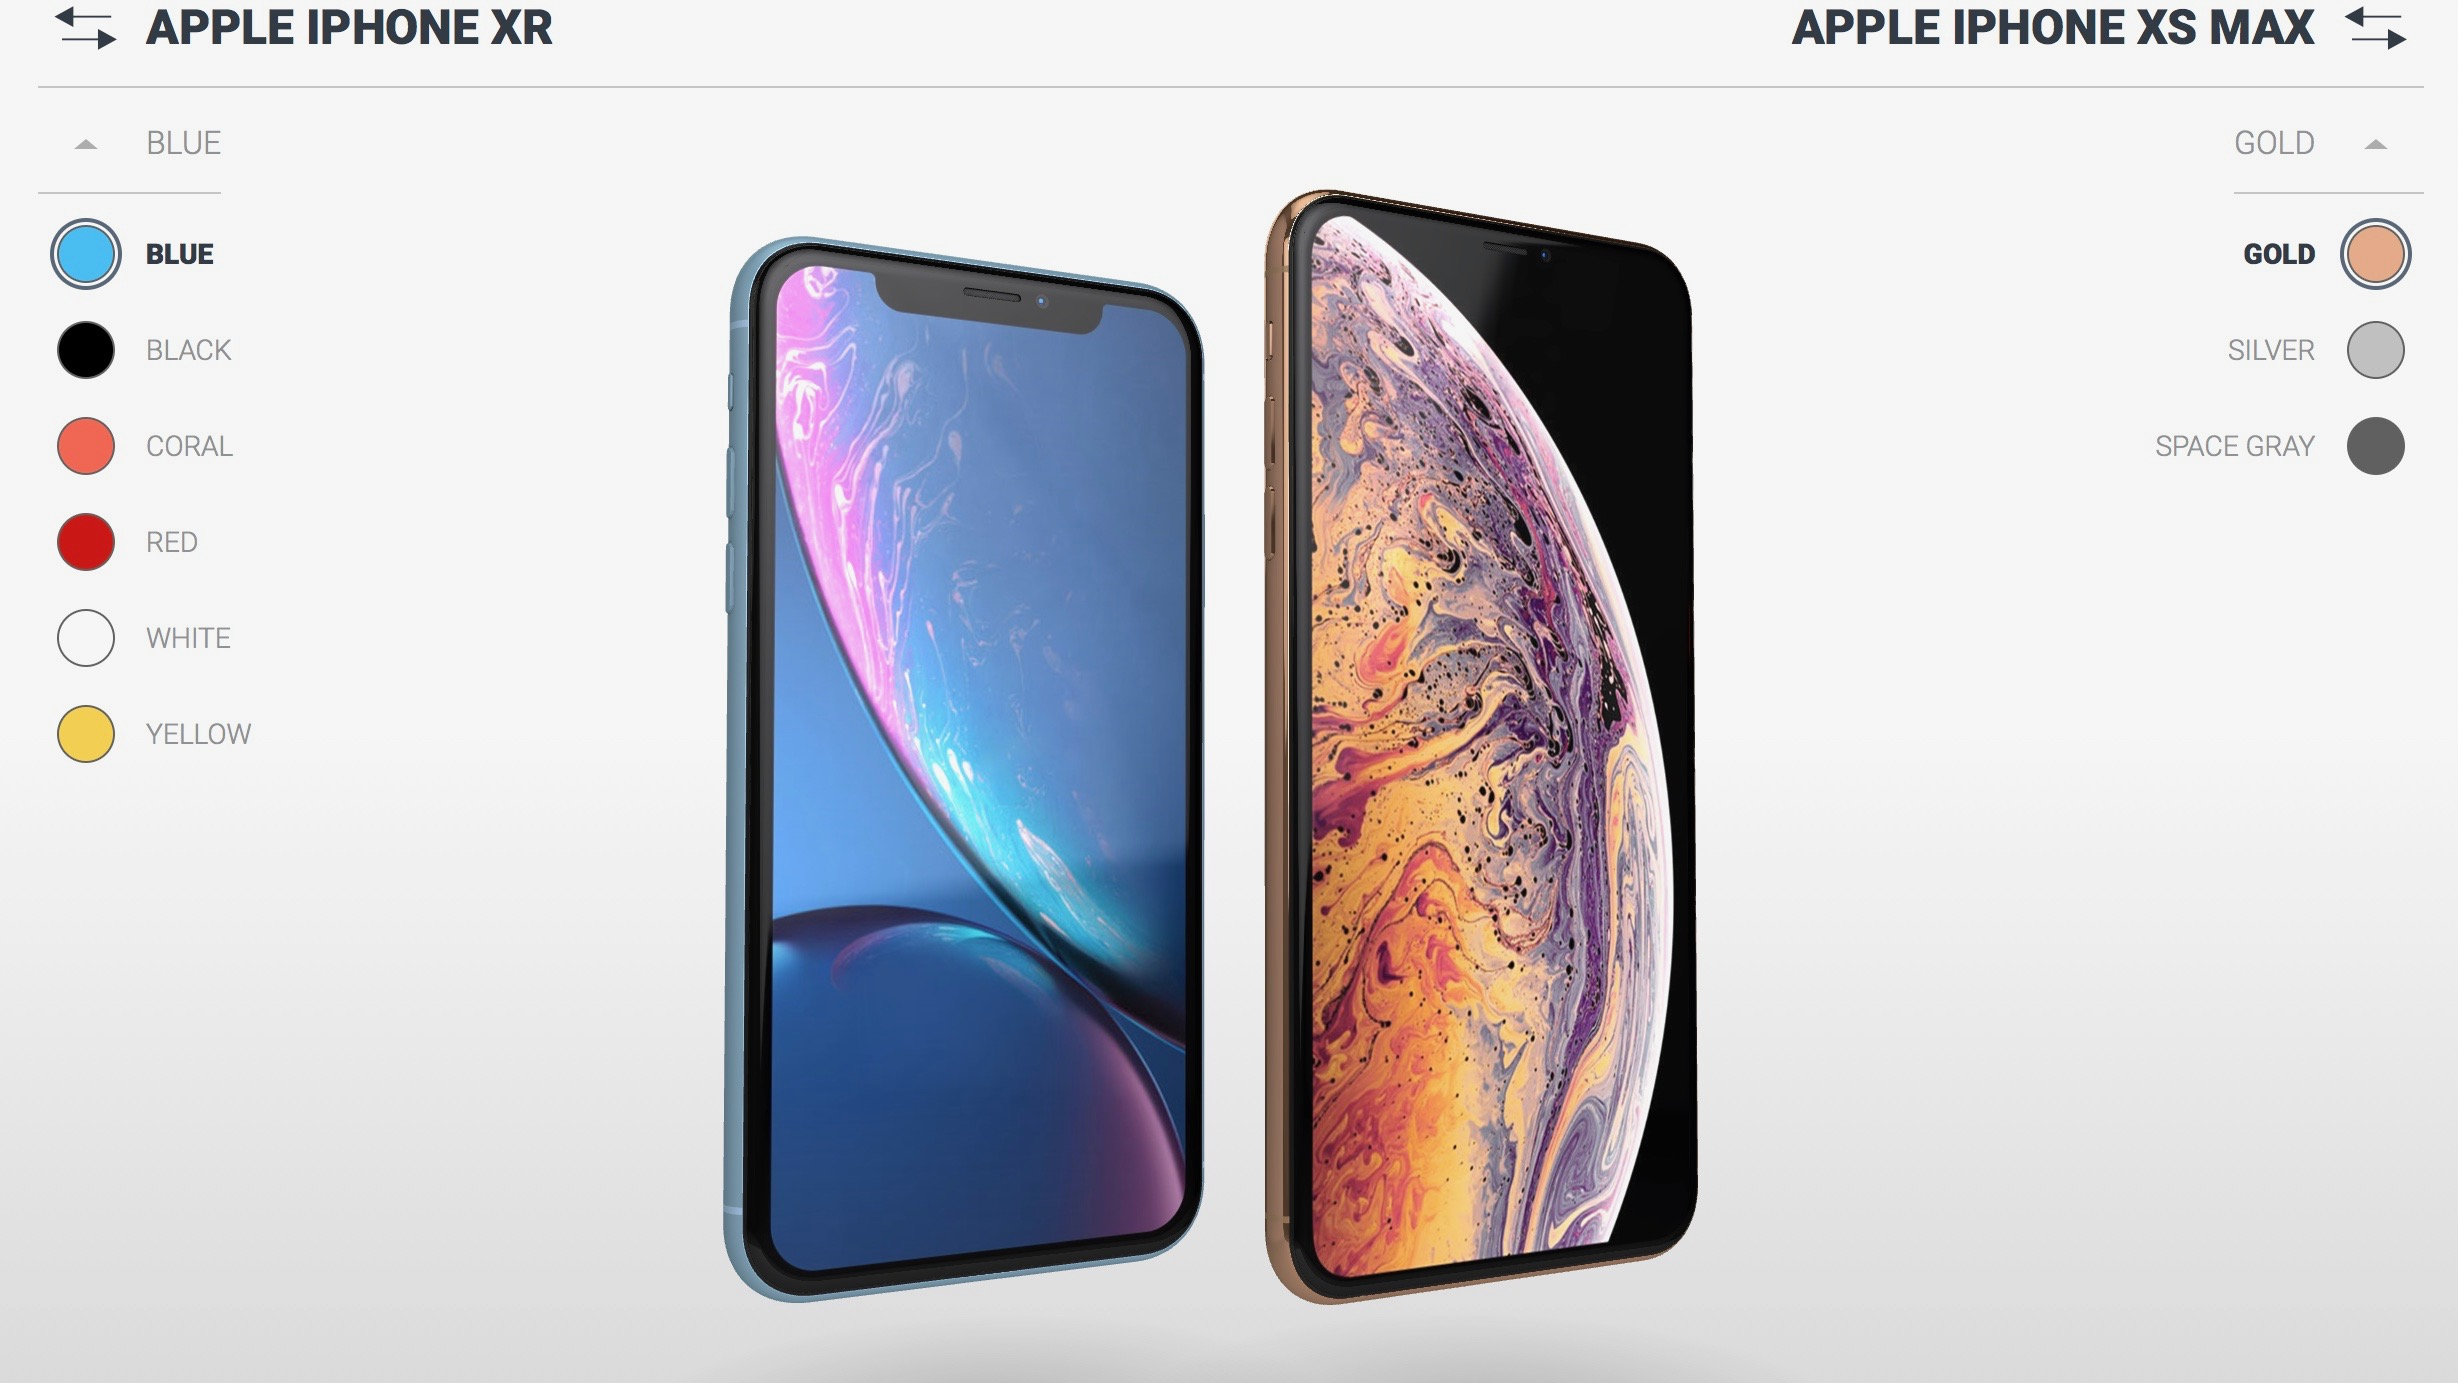 Go hands-on virtually with this interactive 3D visualizer for iPhone Xs, Xs Max and XR